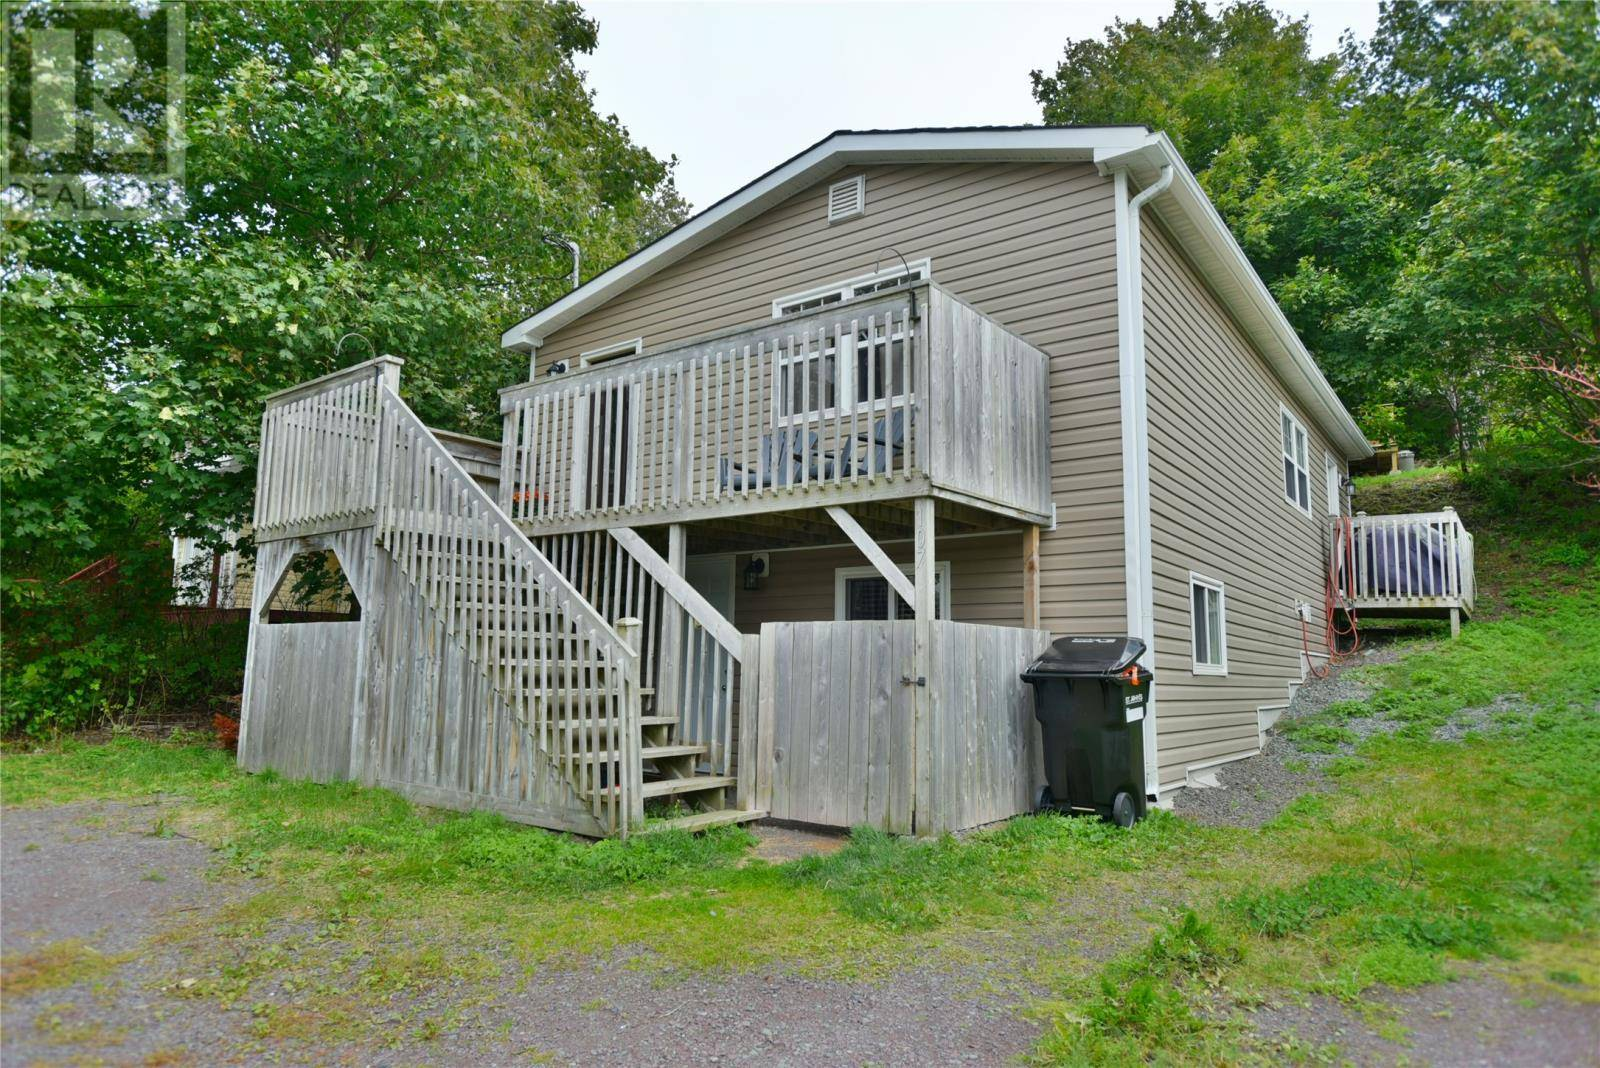 House for sale at 107 Hillview Dr West St. John's Newfoundland - MLS: 1212207